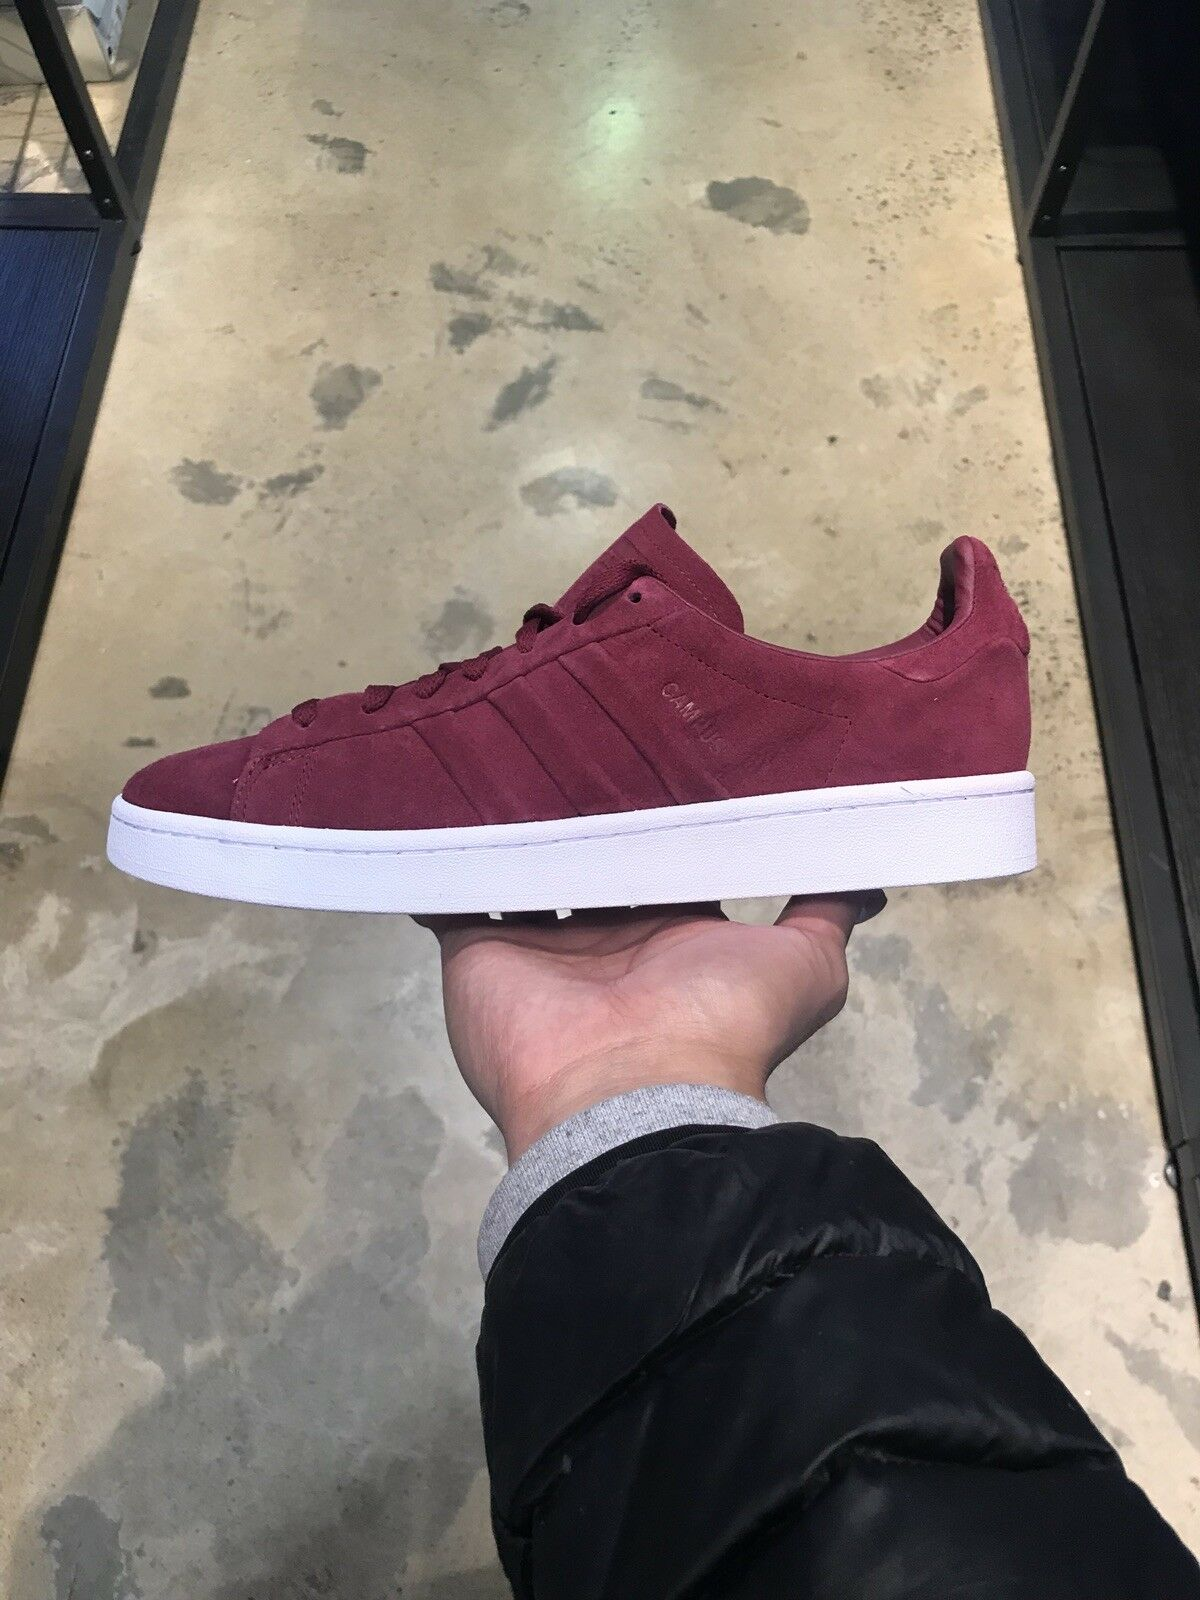 ADIDAS CAMPUS MAROON SUEDE SHOES SIZE US 8 NEW COMMON PROJECT STAN SMITH GAZELLE